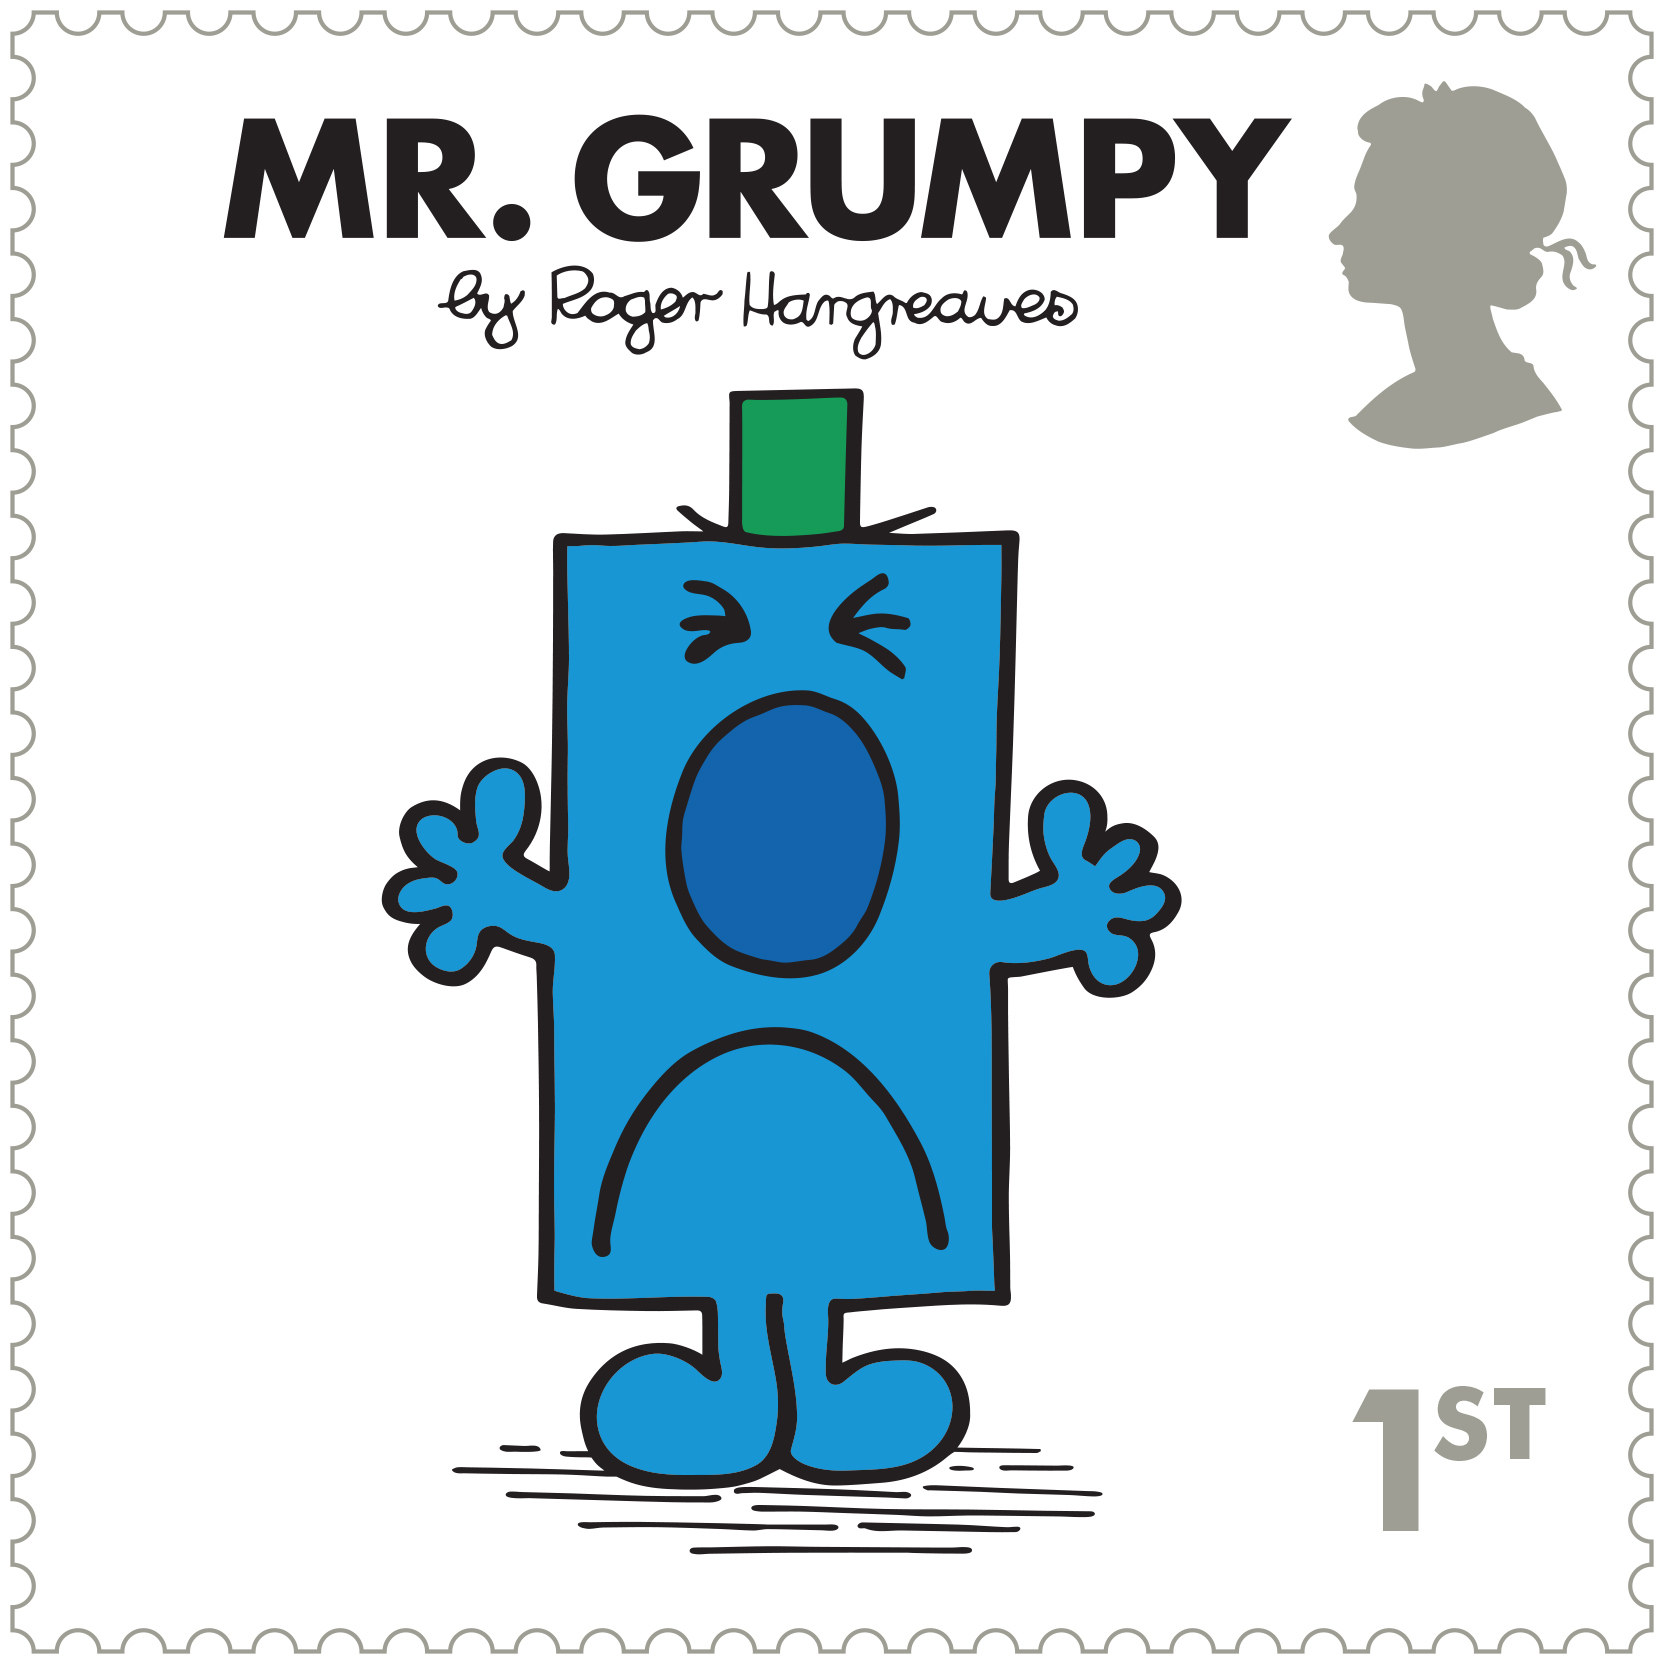 Mr Men and Little Miss stamps - Mr Grumpy (Royal Mail/PA)